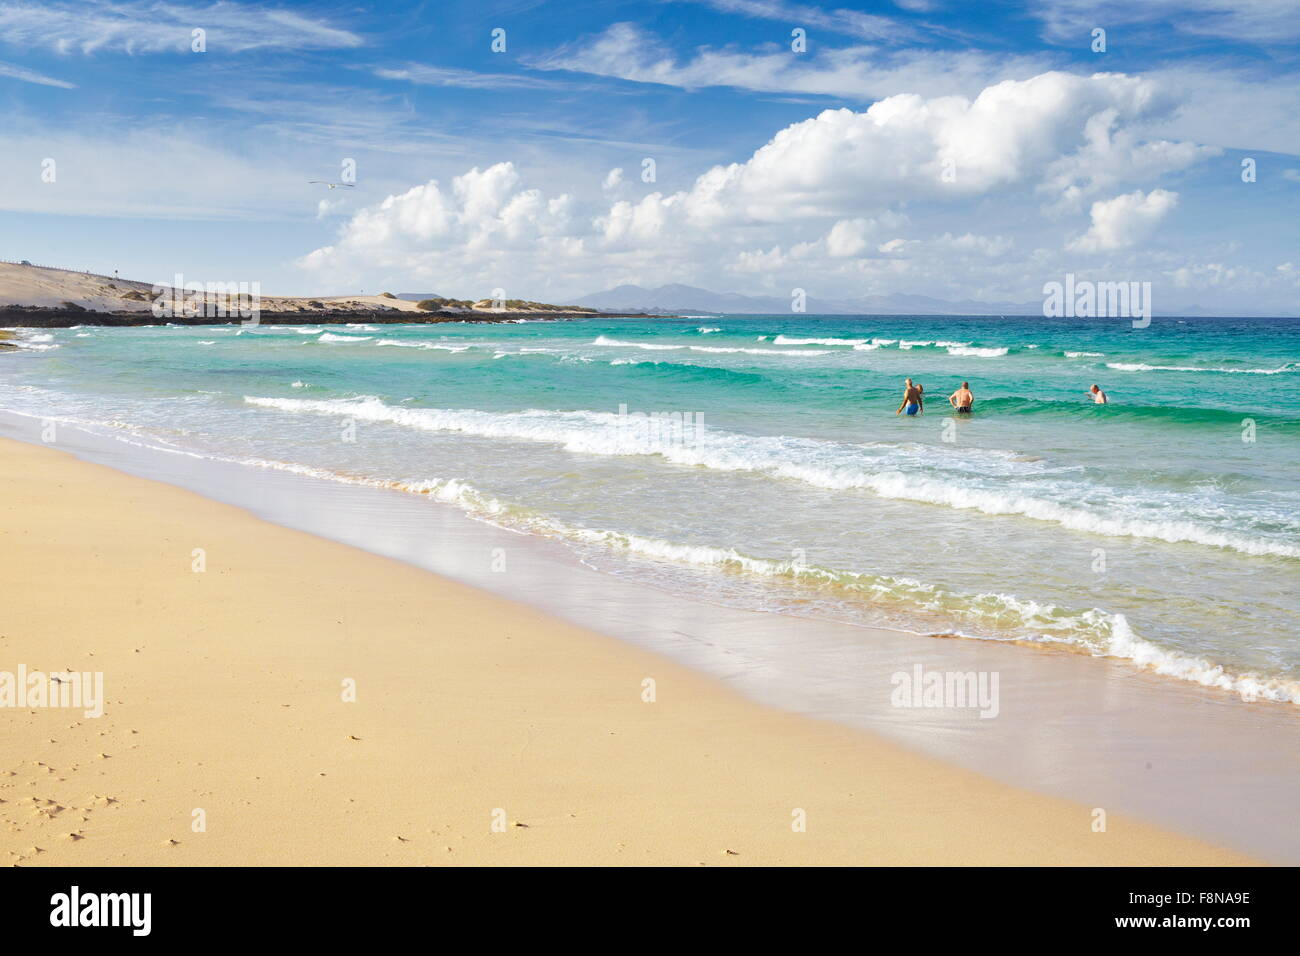 Fuerteventura Island, beach near Corralejo, Parque Natural de  Corralejo, Spain, Canary Islands, - Stock Image